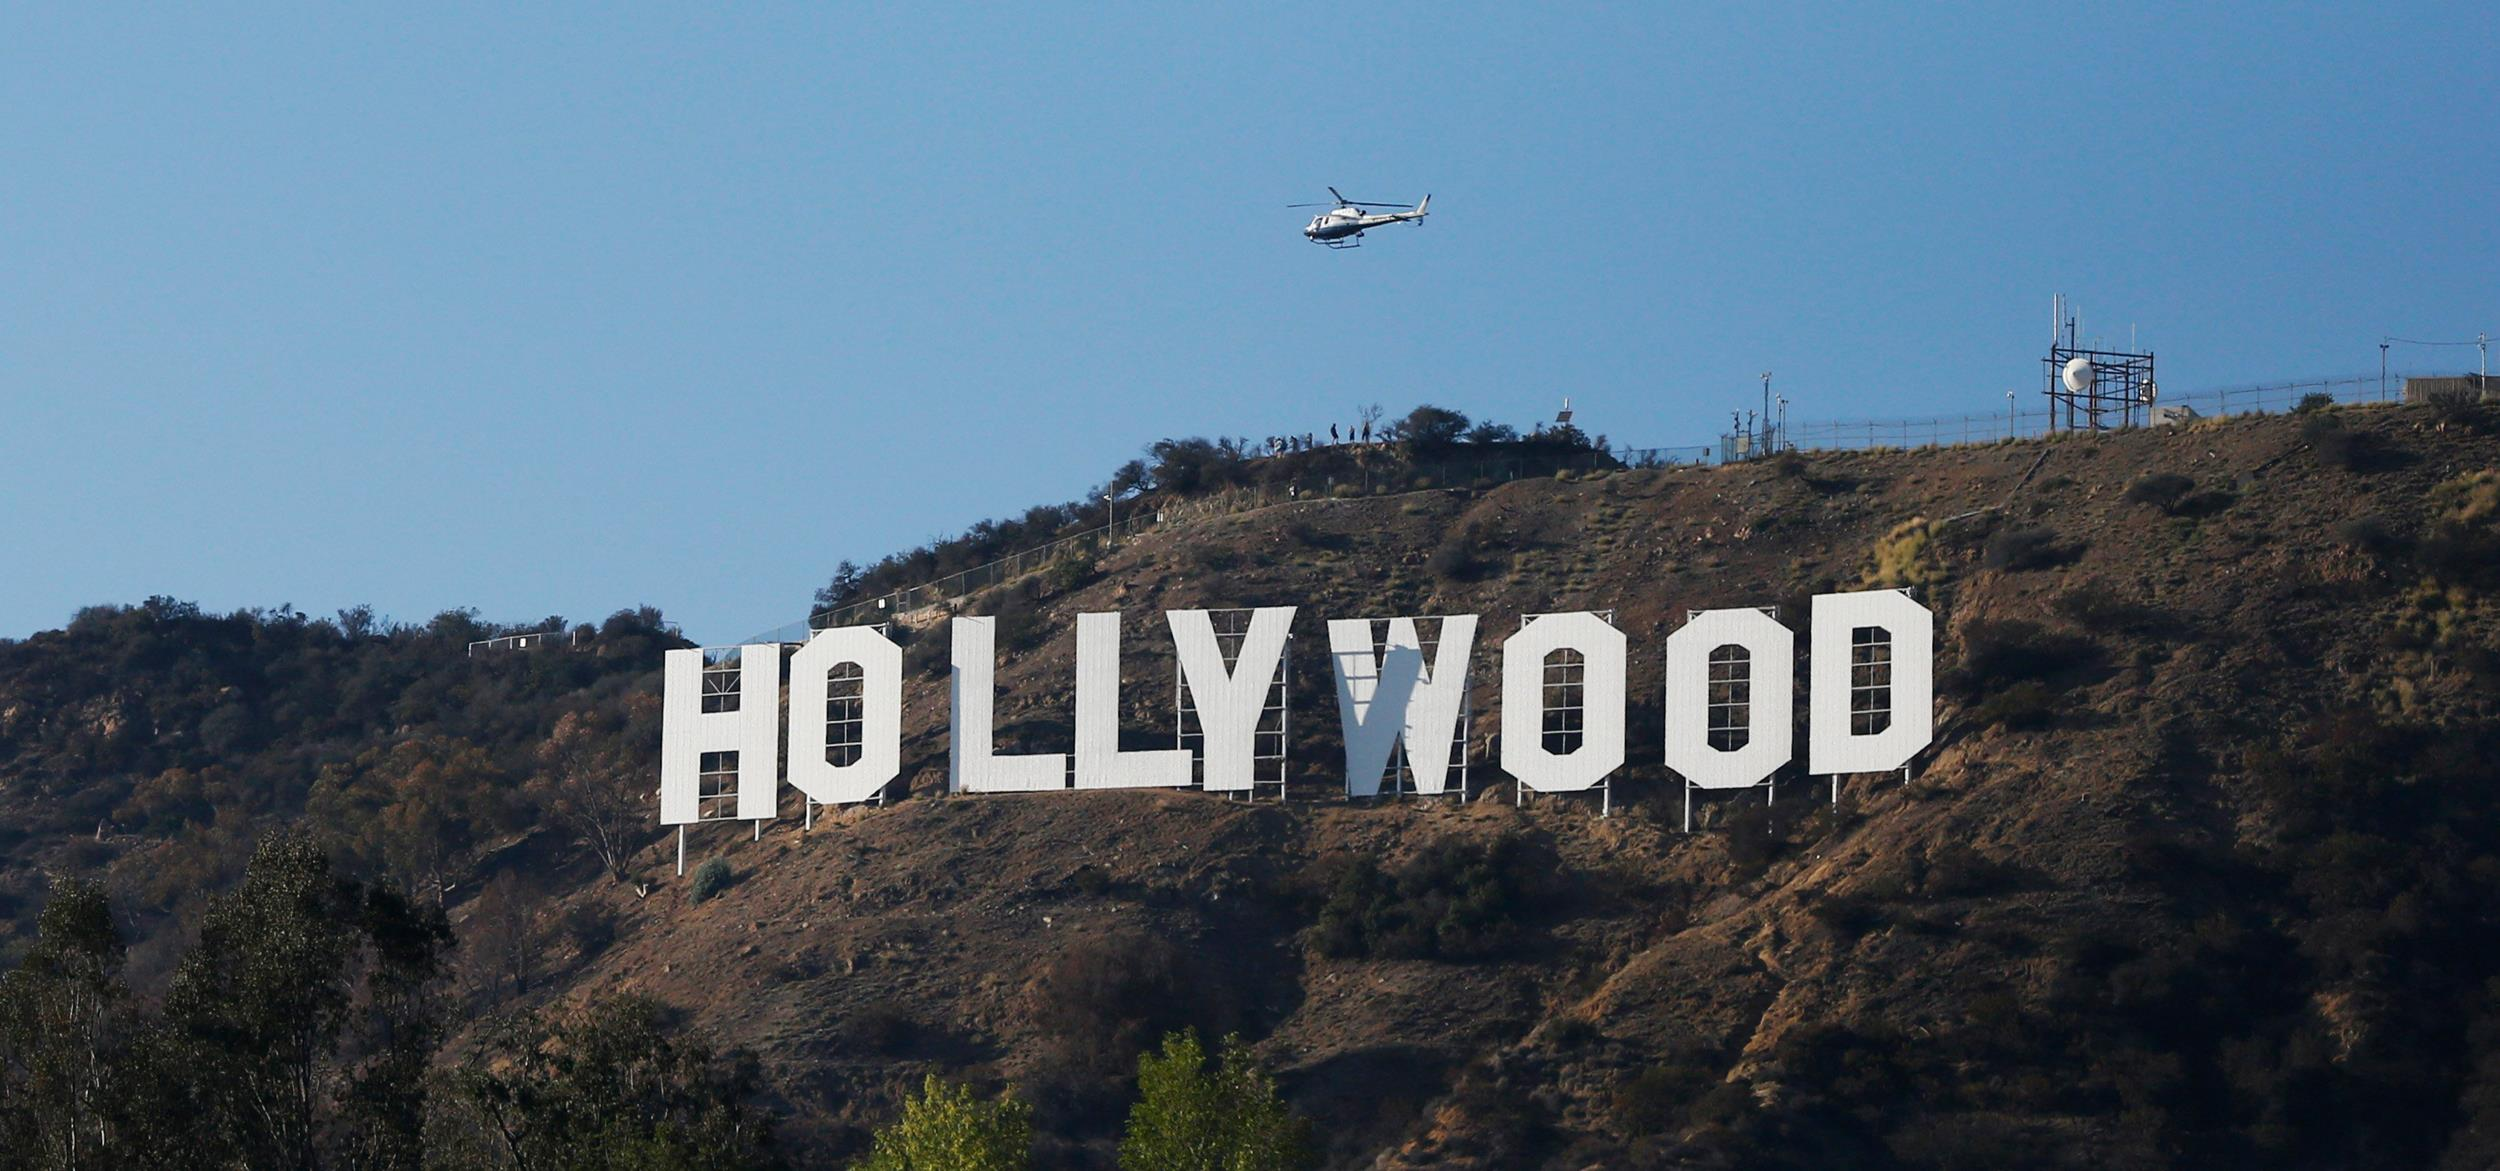 la police helicopter with Suspect Arrested Body Parts Found Near Hollywood Sign N49206 on Donald Trump Boeing 757 Airliner Trump Force One 2016 6 further Los Usos Mas Extranos De Los Drones moreover Ec 135 moreover Boko Haram Recruitment Tactics us 571265afe4b06f35cb6fc595 furthermore EH101 3 e.